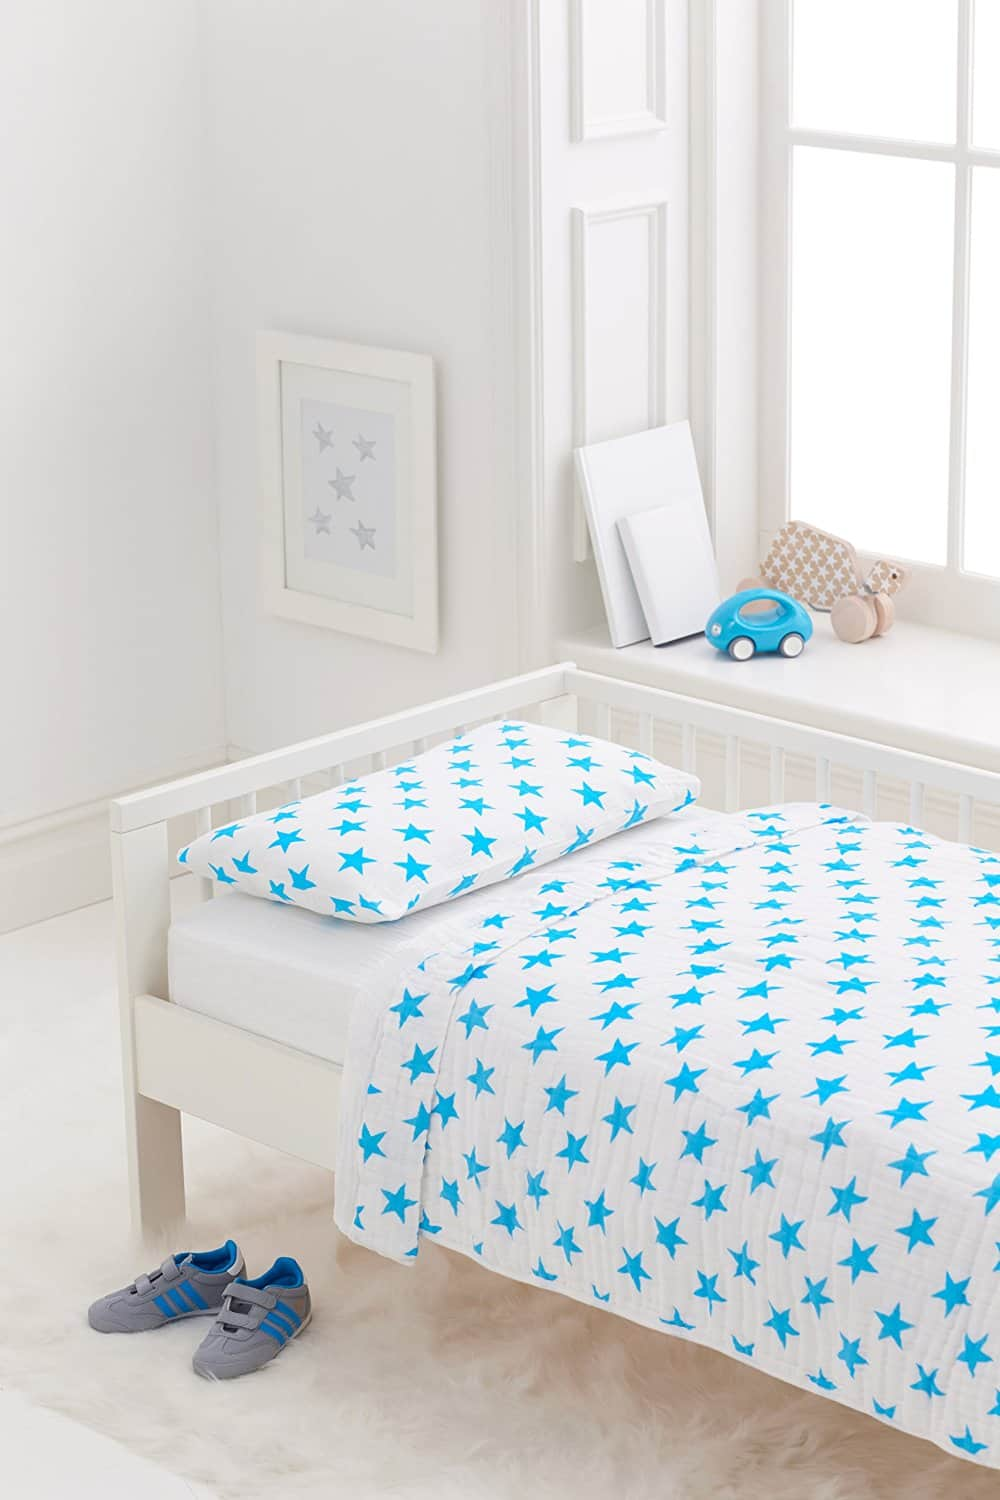 Aden + Anais: Toddler Bed In A Bag $52.50, Changing Pad Cover  $9.60 & More